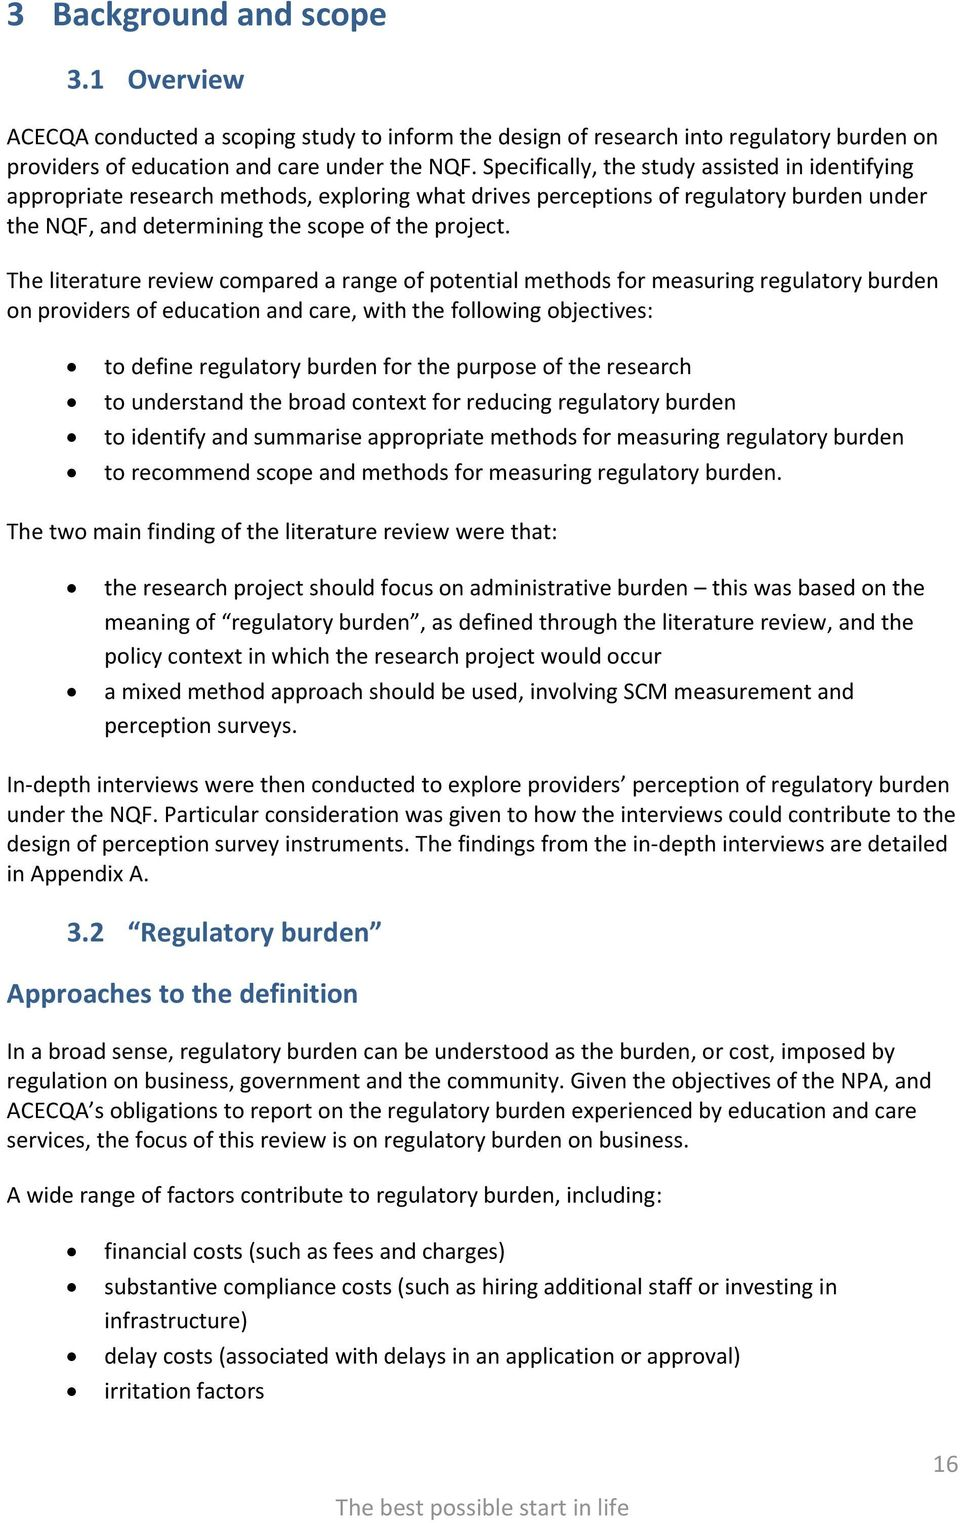 The literature review compared a range of potential methods for measuring regulatory burden on providers of education and care, with the following objectives: to define regulatory burden for the